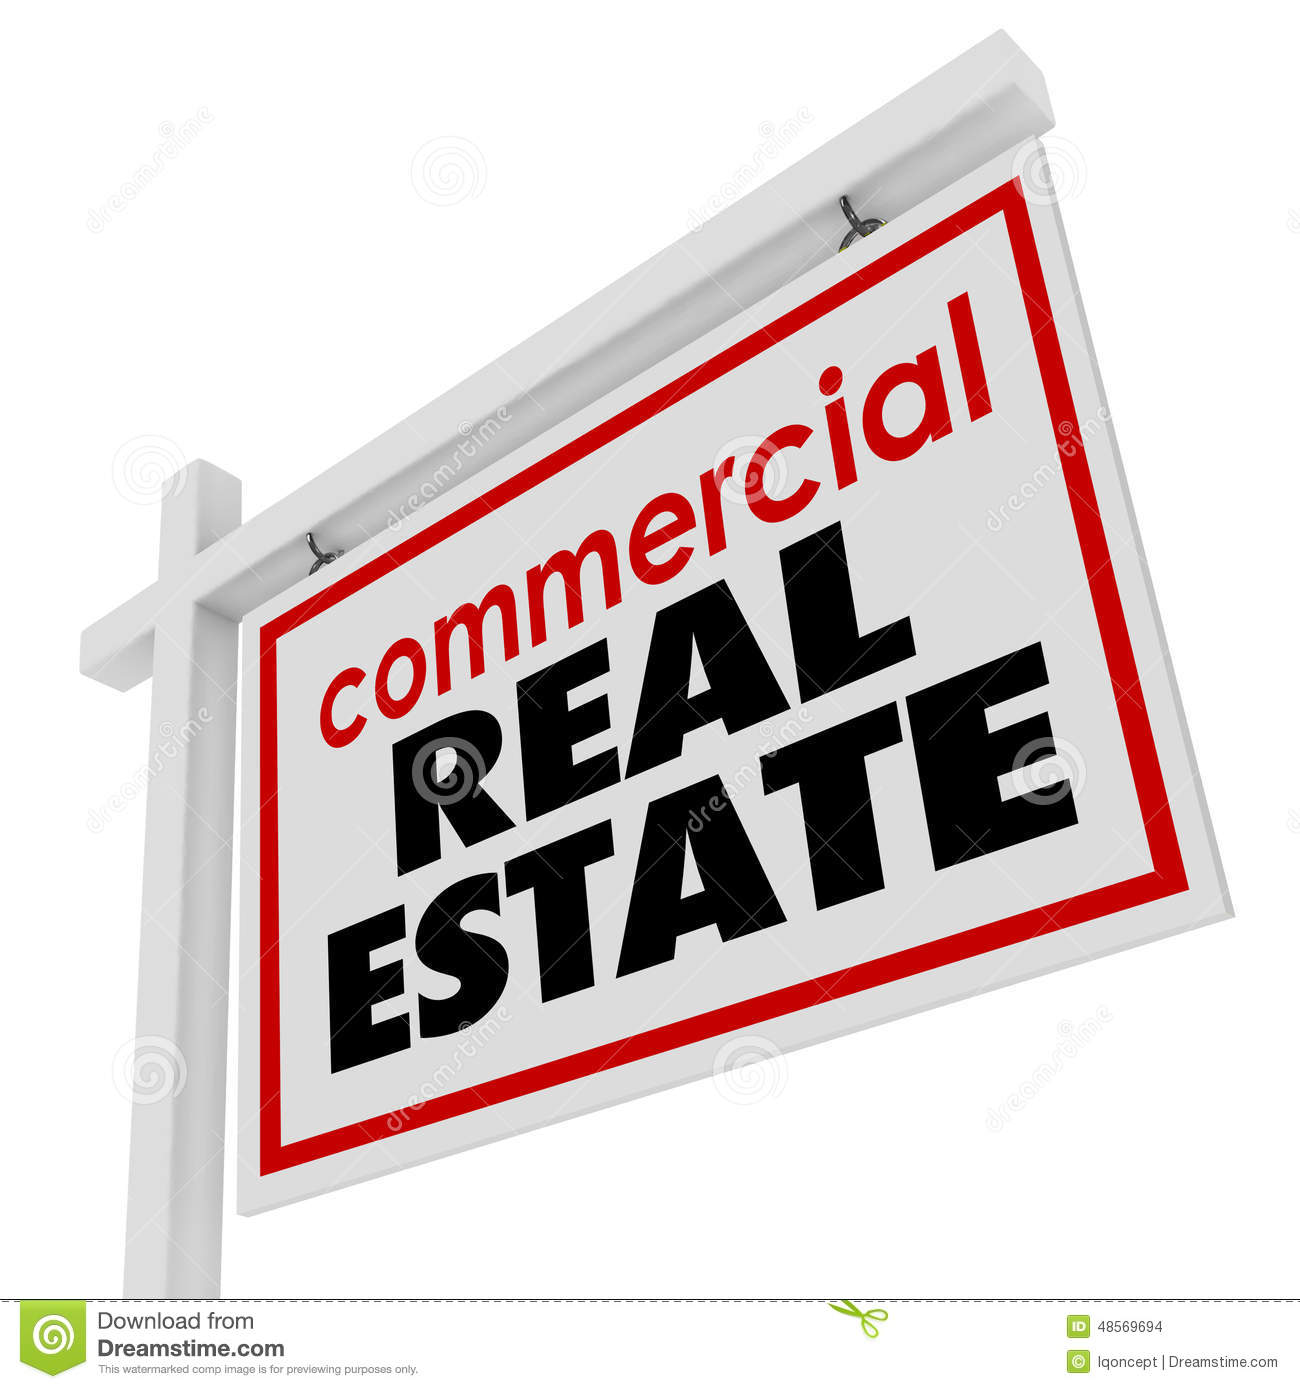 Commercial Property Building : Commercial real estate sign building office business for